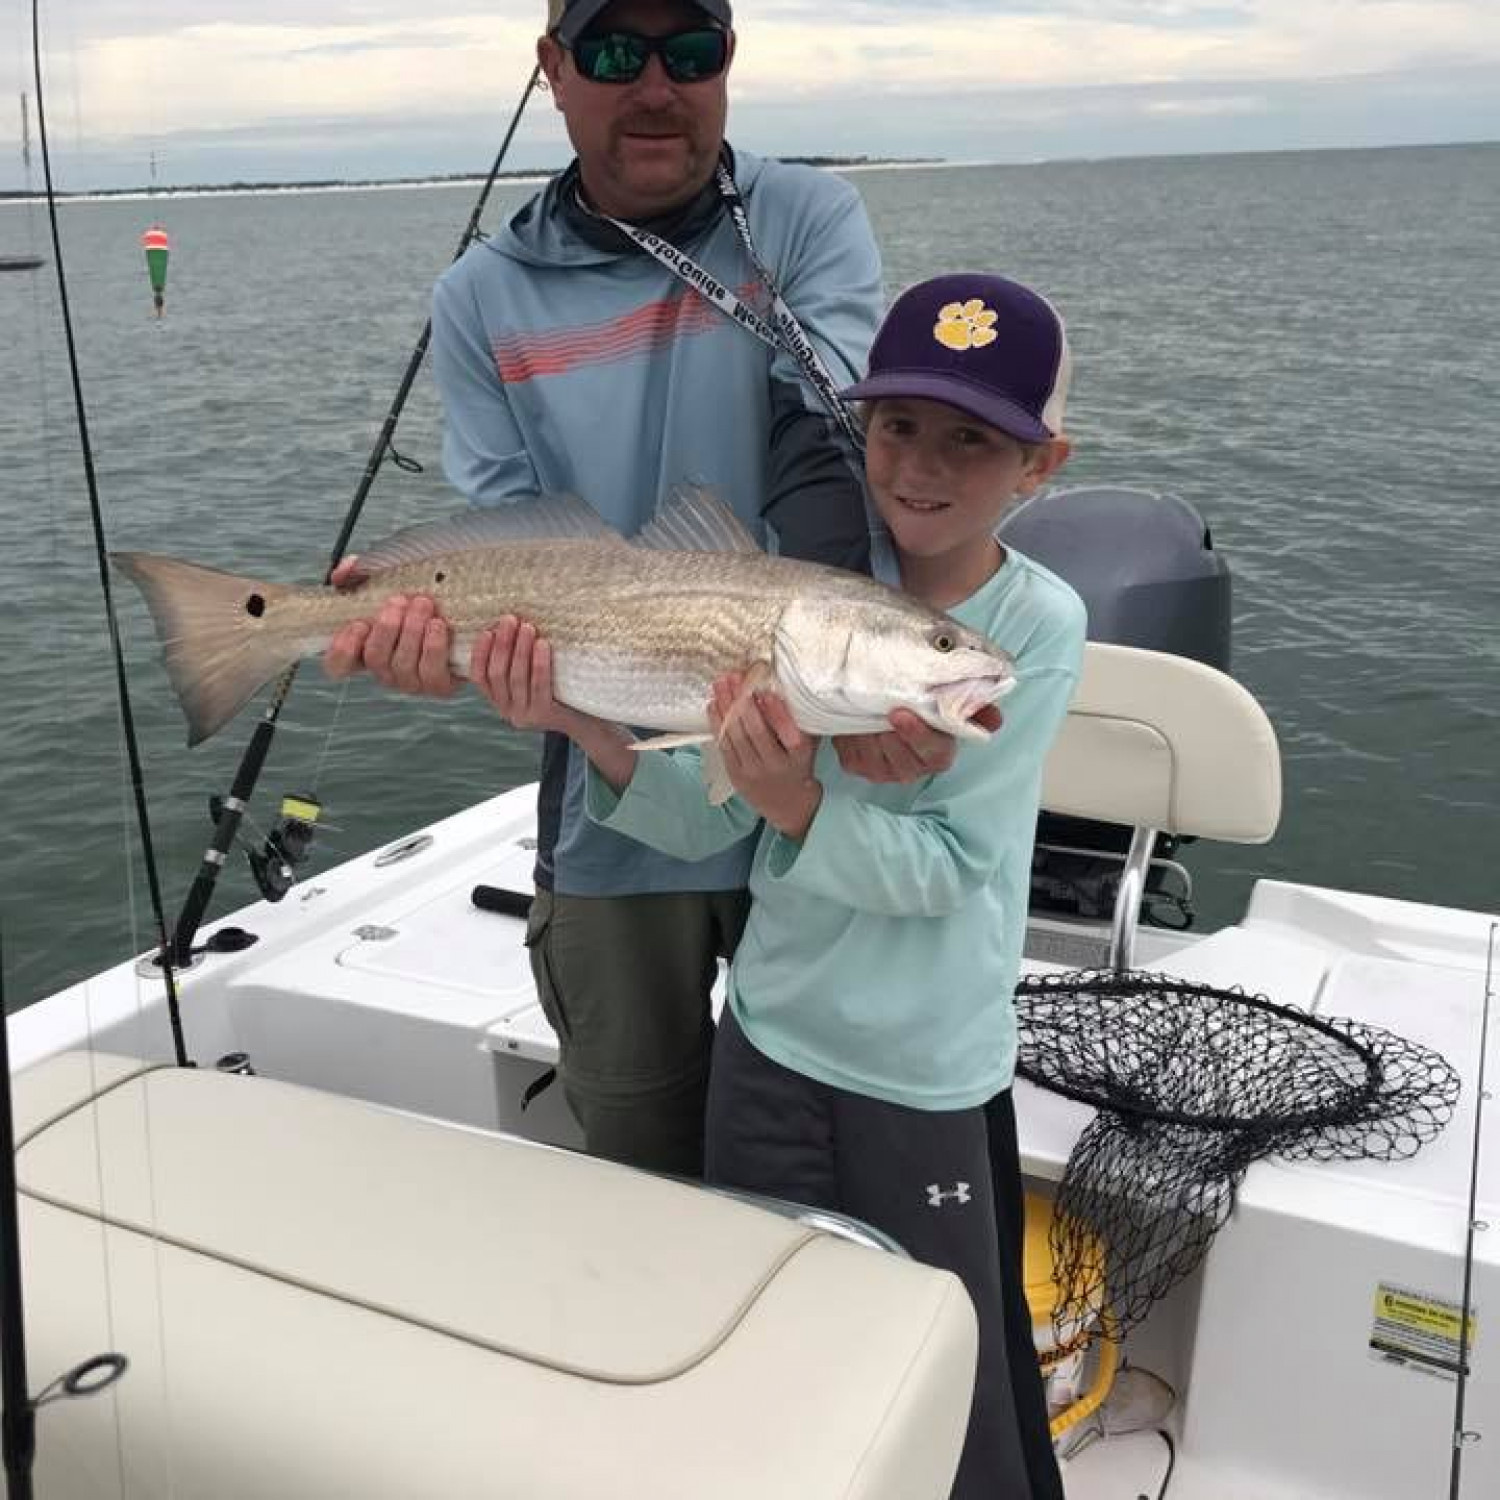 Title: Over slot redfish on light tackle. - On board their Sportsman Island Bay 20 Bay Boat - Location: Panama City FL. Participating in the Photo Contest #SportsmanApril2018